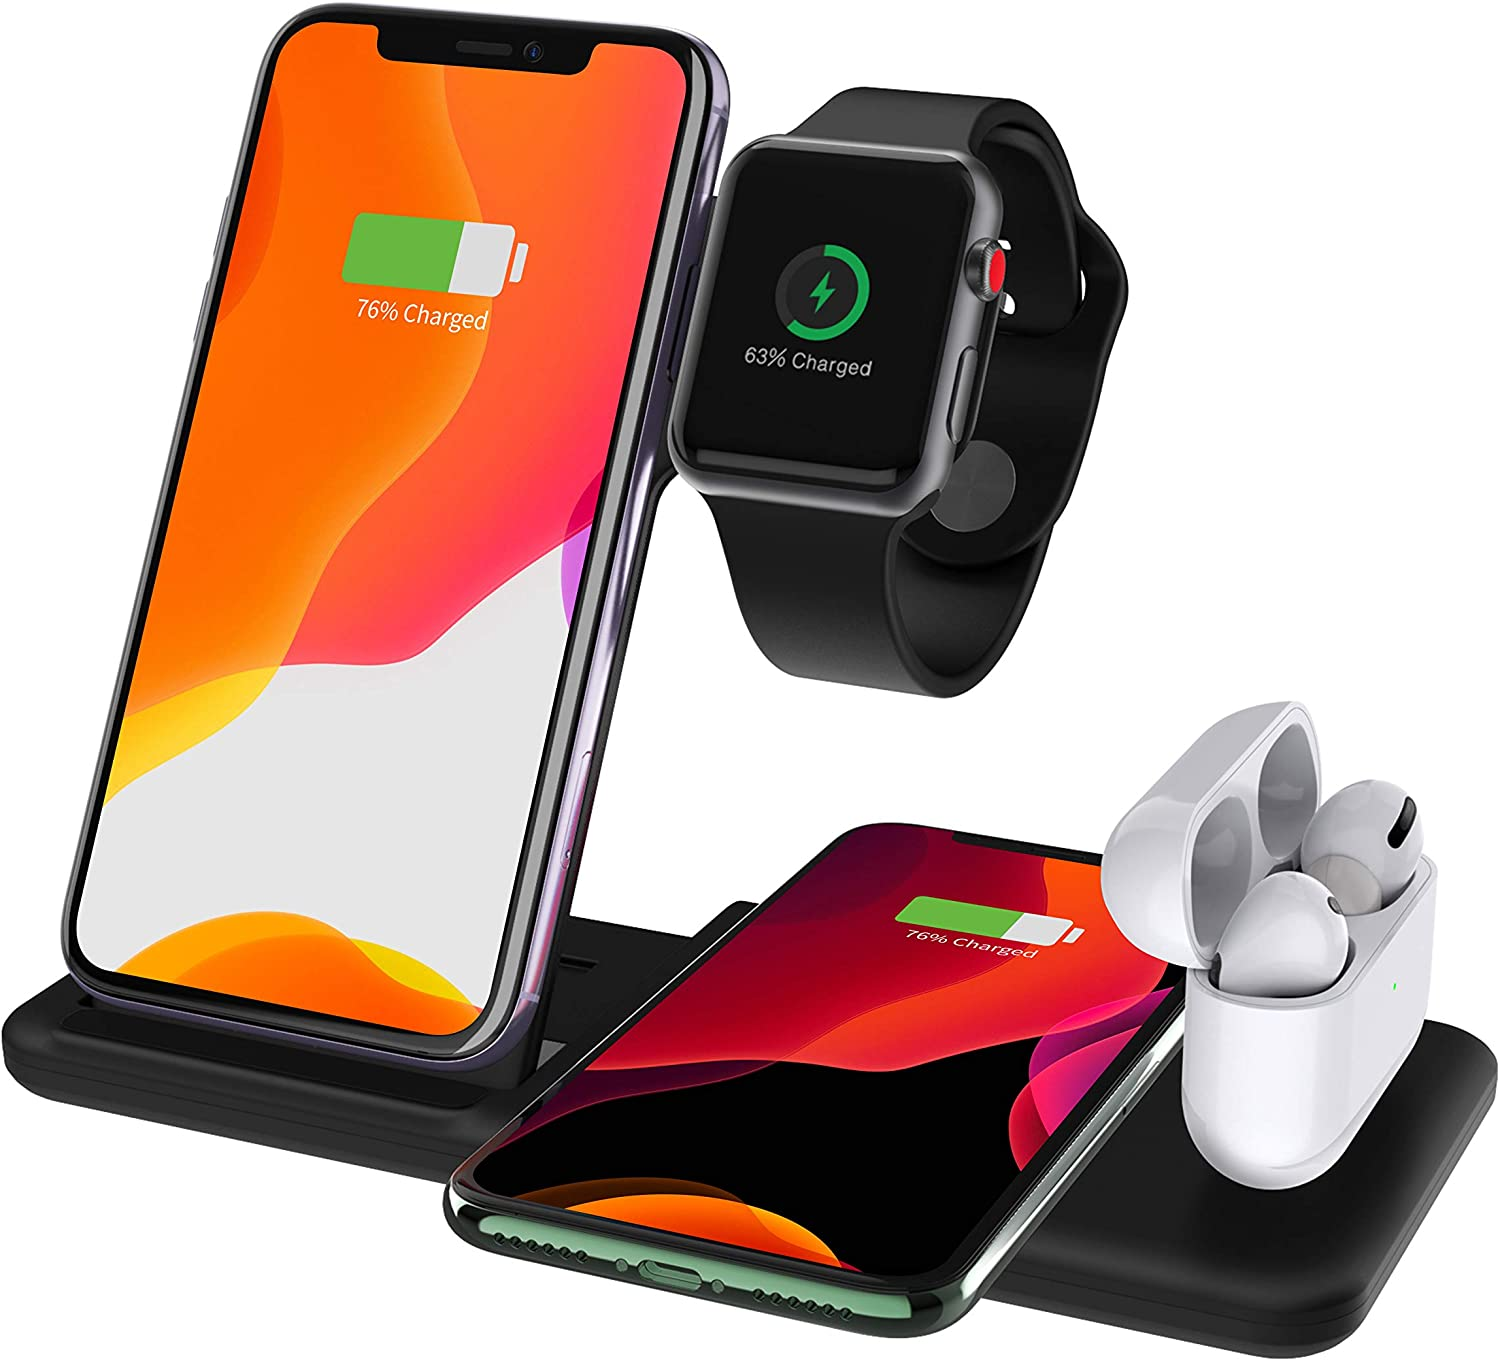 CNSL Wireless Charger Station,4 in 1 Foldable Wireless Charger Stand,15W Qi Fast Charging Dock for Airpods and Watch Series 5/4/3/2/1,Compatible with iPhone 11/11 Pro/X/8,Samsung Galaxy S10(Black)